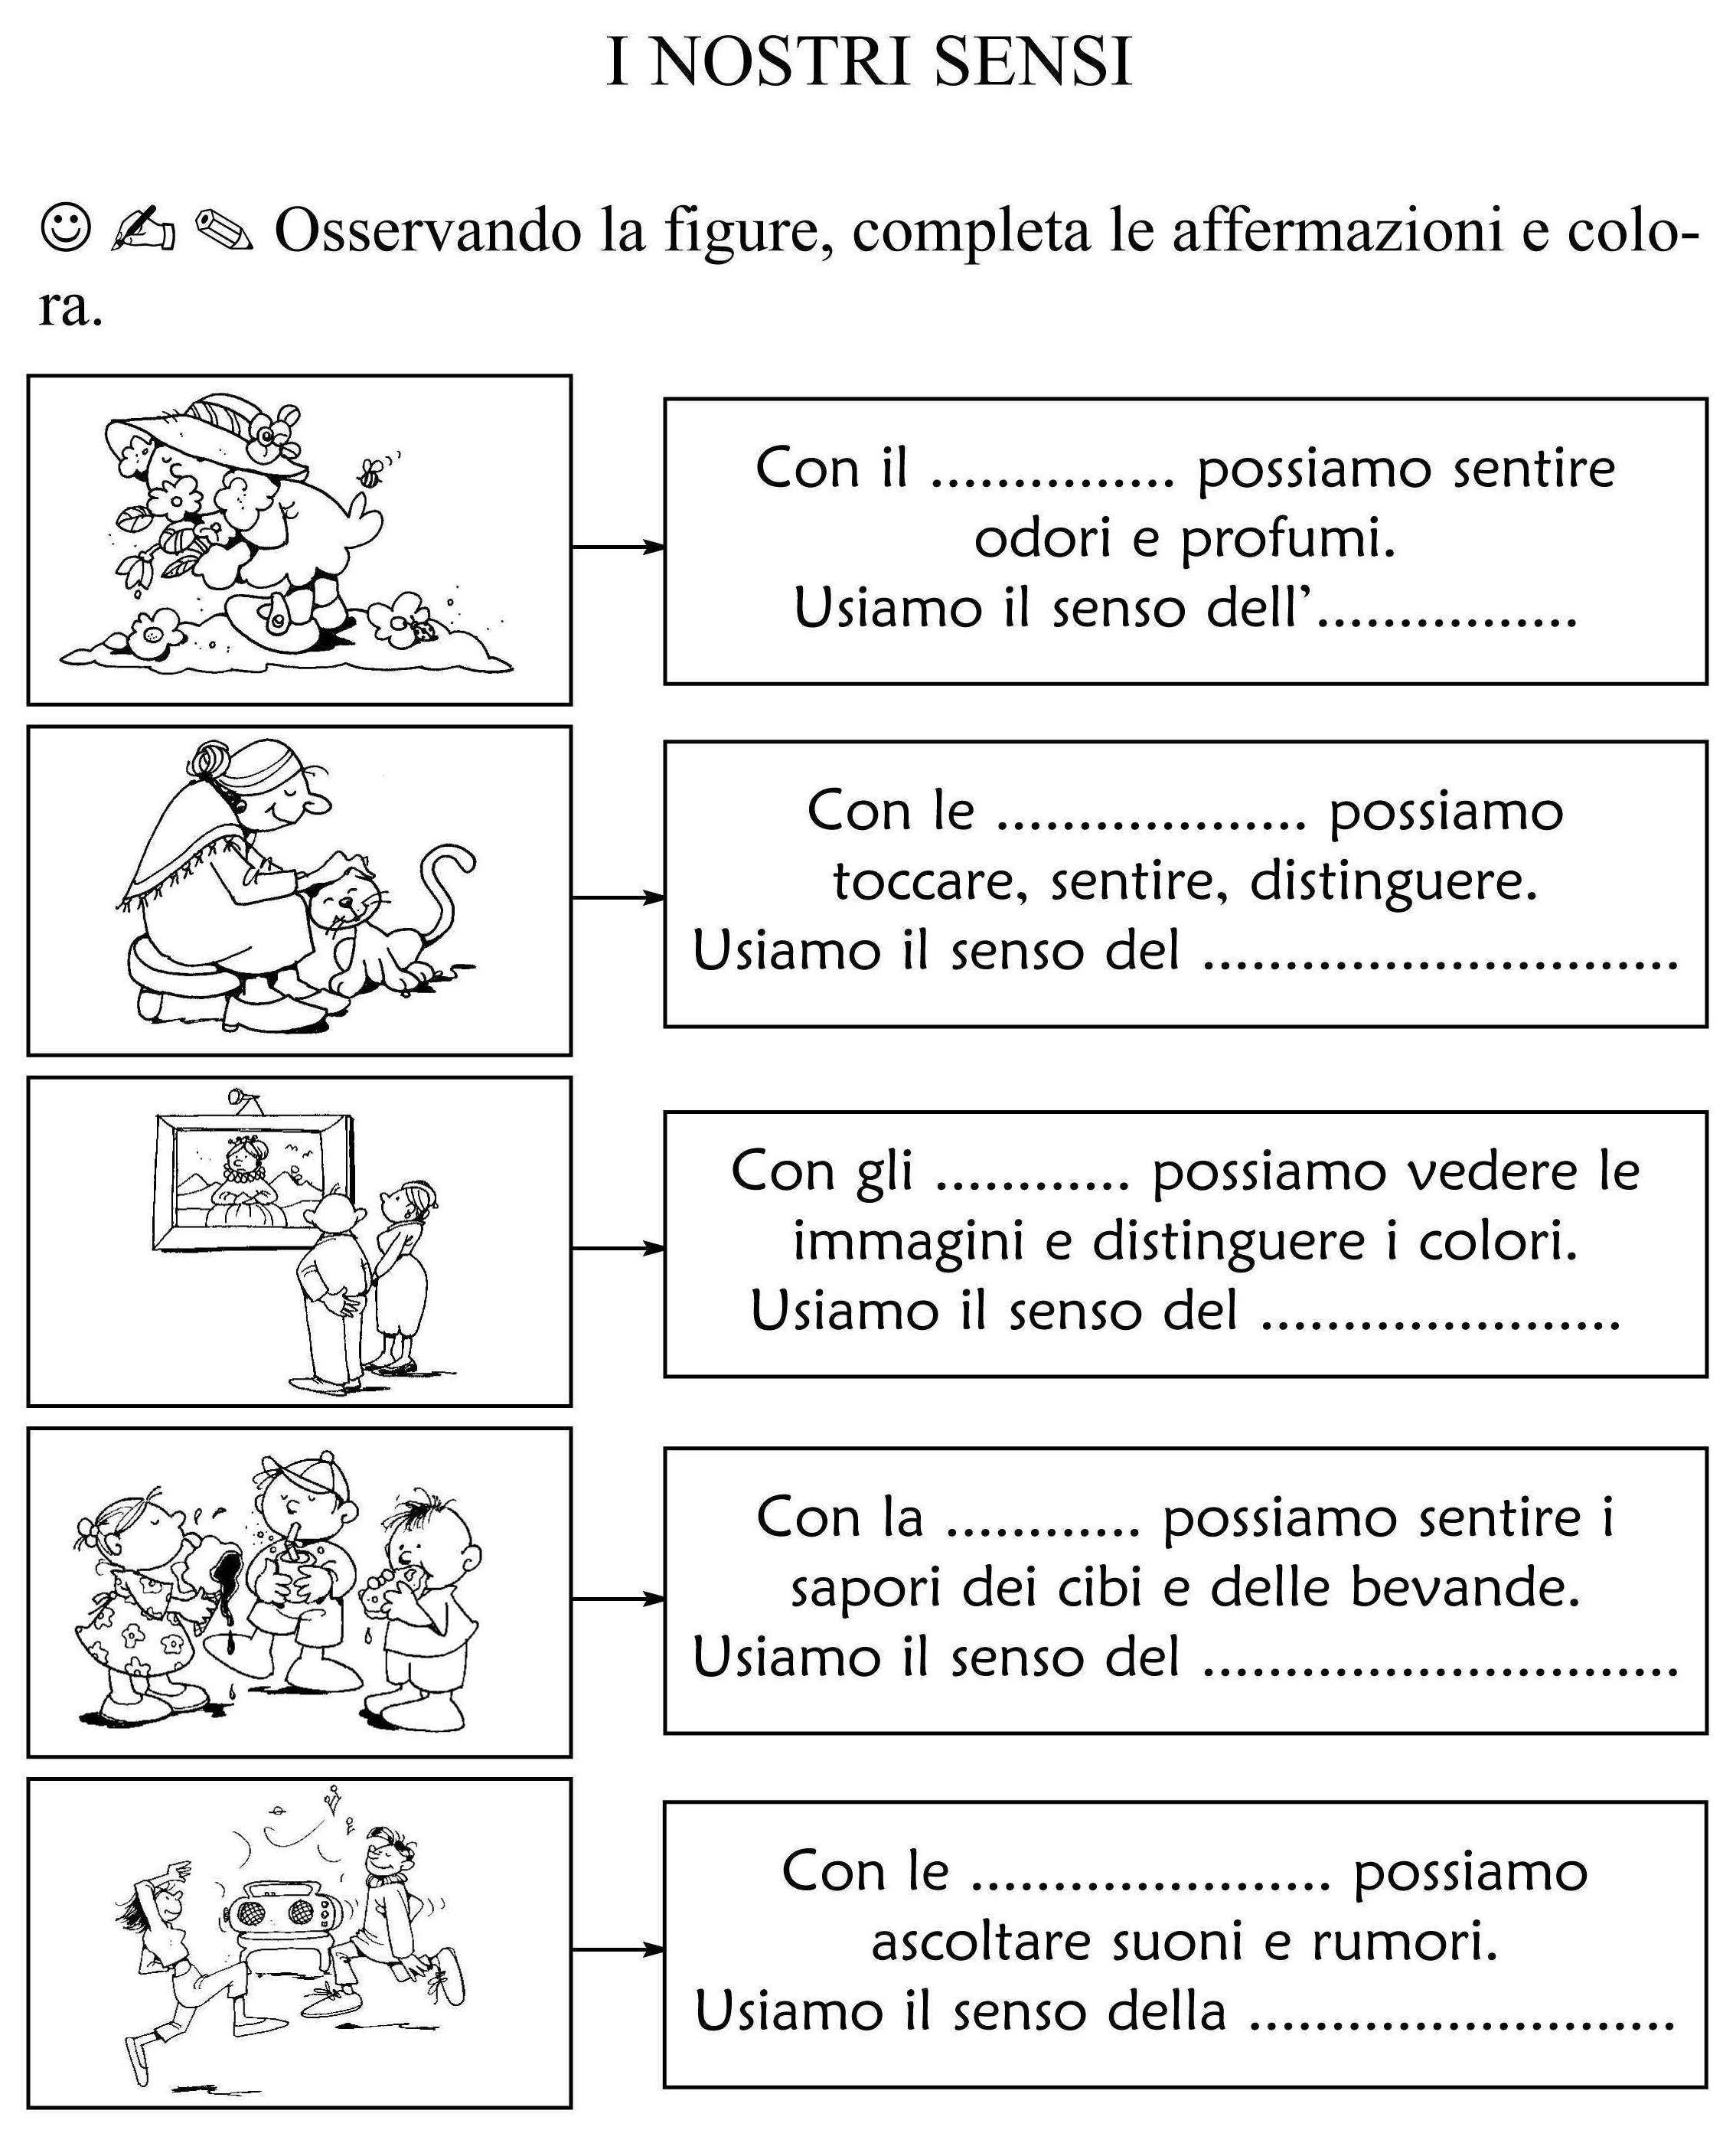 Pin By Rosa Lancellotta On Teaching Material